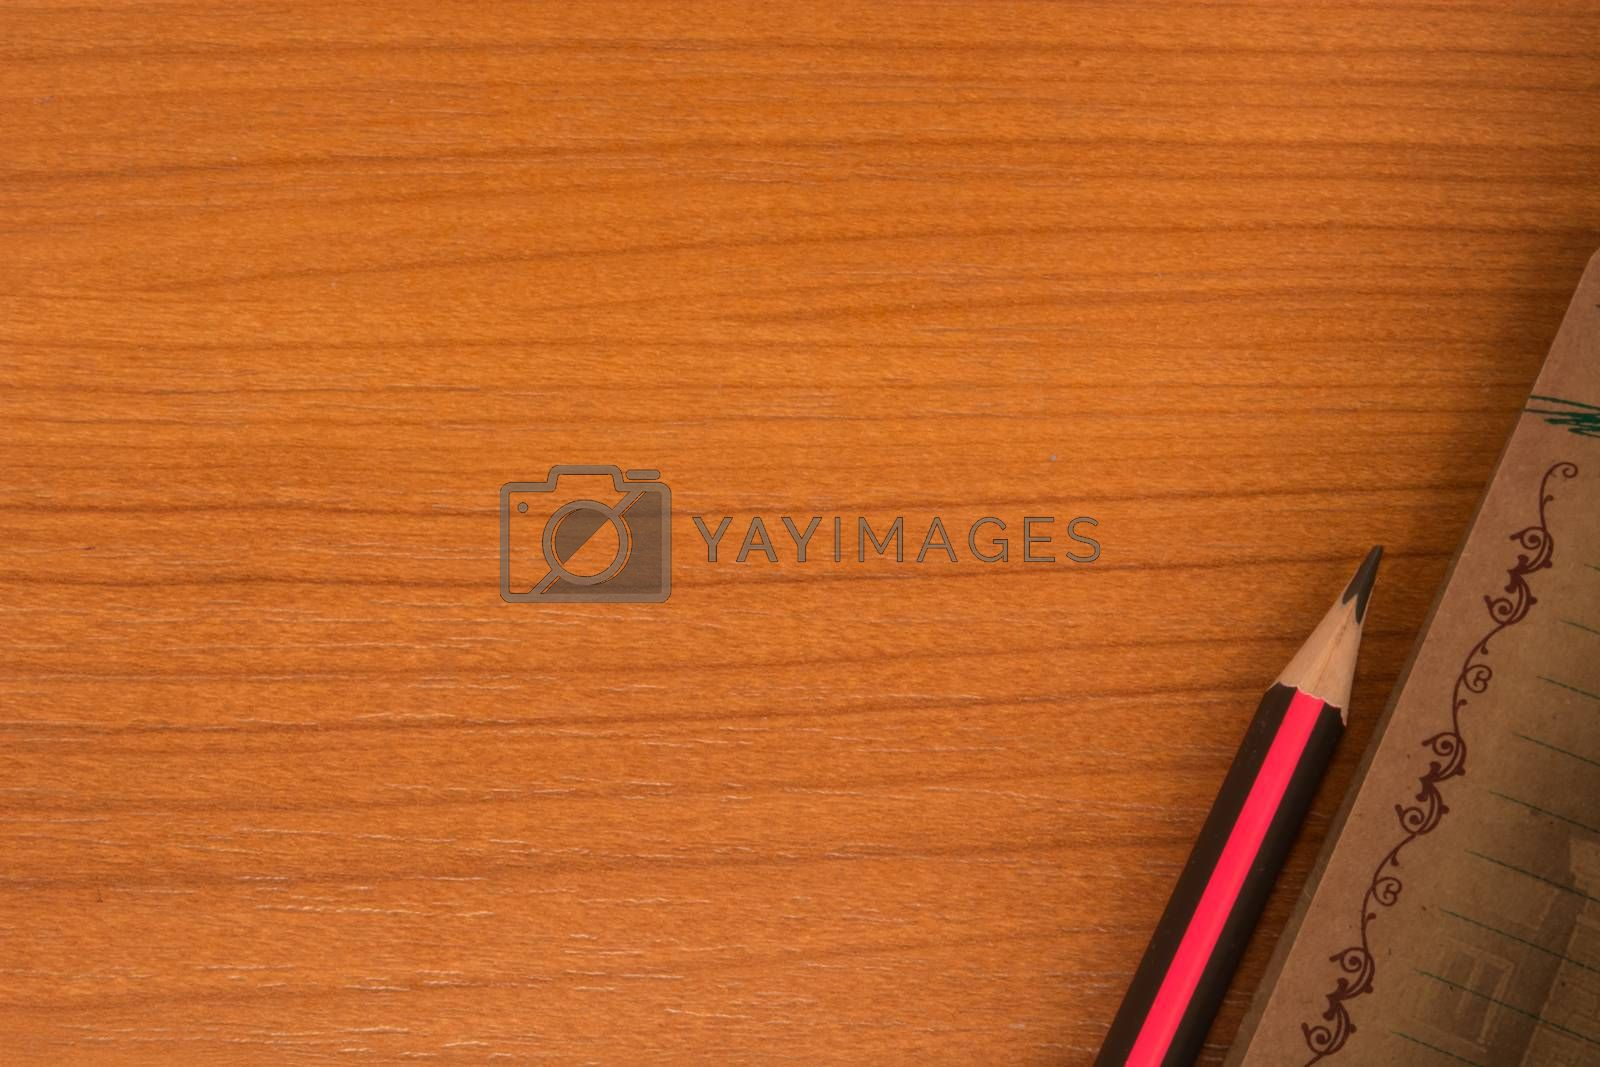 Wooden table with notebook and pencil in one corner